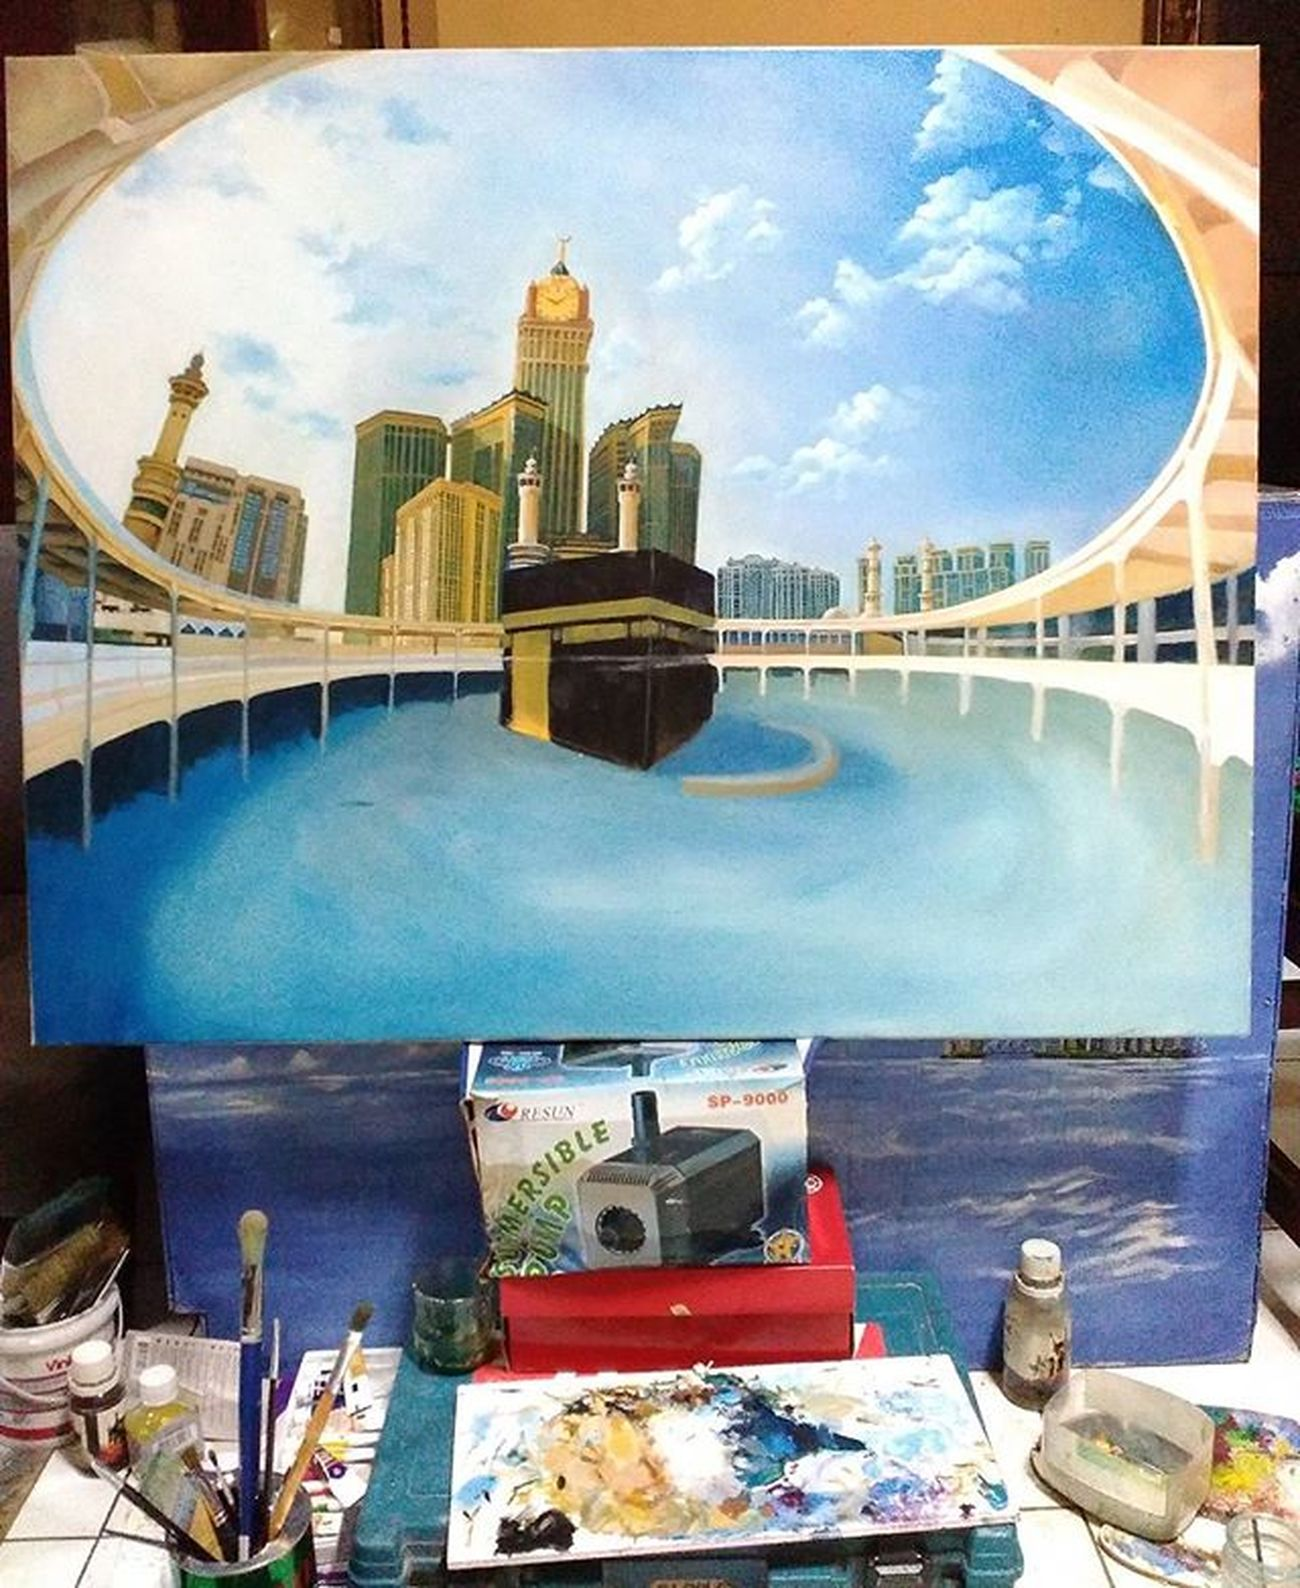 On Progres.. Masjidilharam Kabah Sketch Art Arsitektur Mood Mecca Oil Paint Oiloncanvas Canvas Progrès Islam